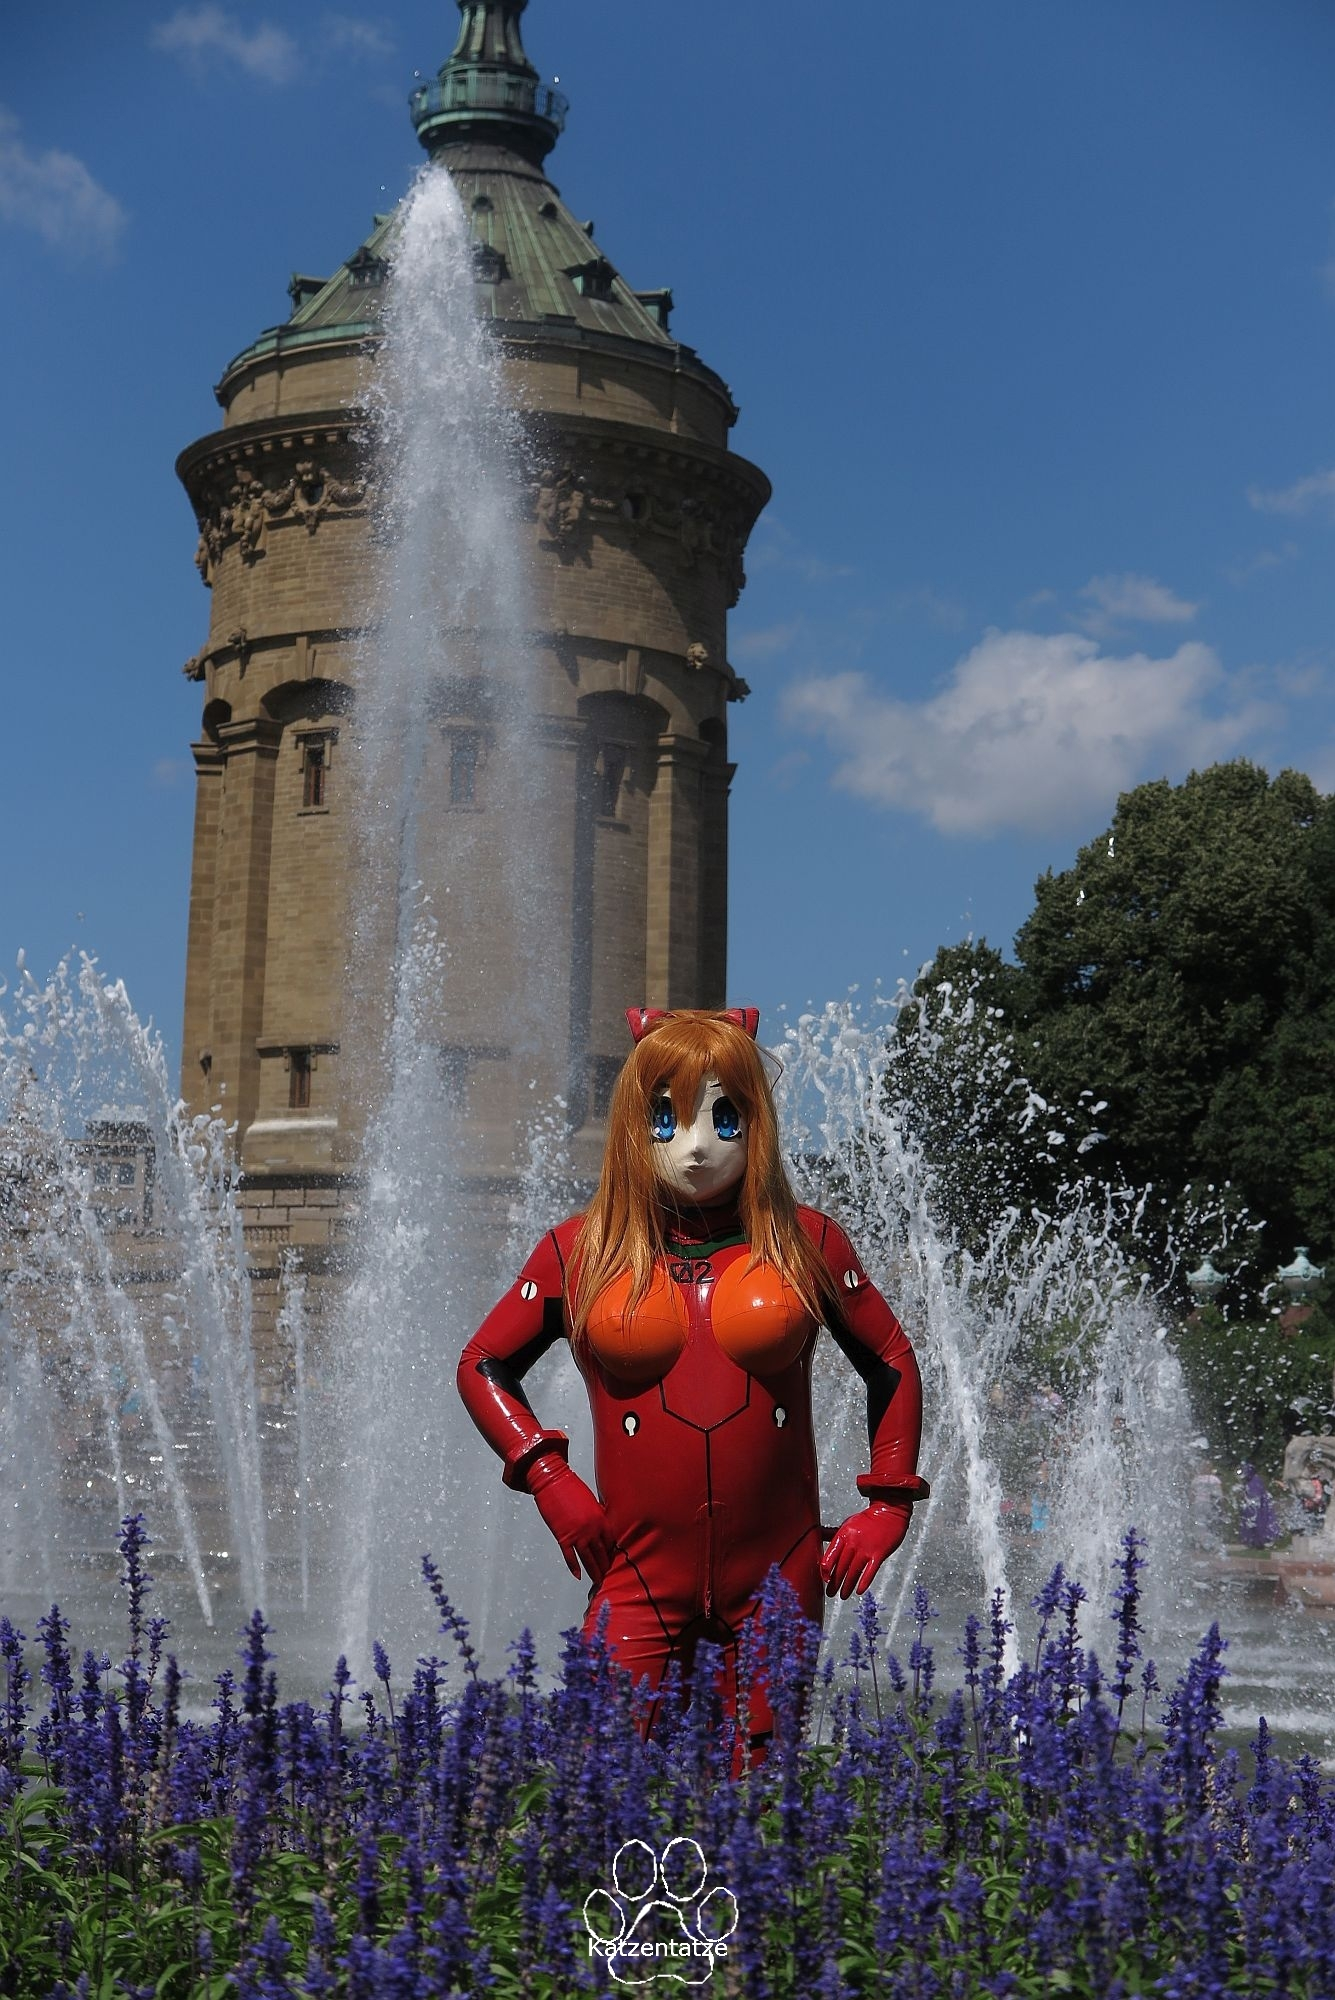 Asuka in Angesicht des Wasserturms